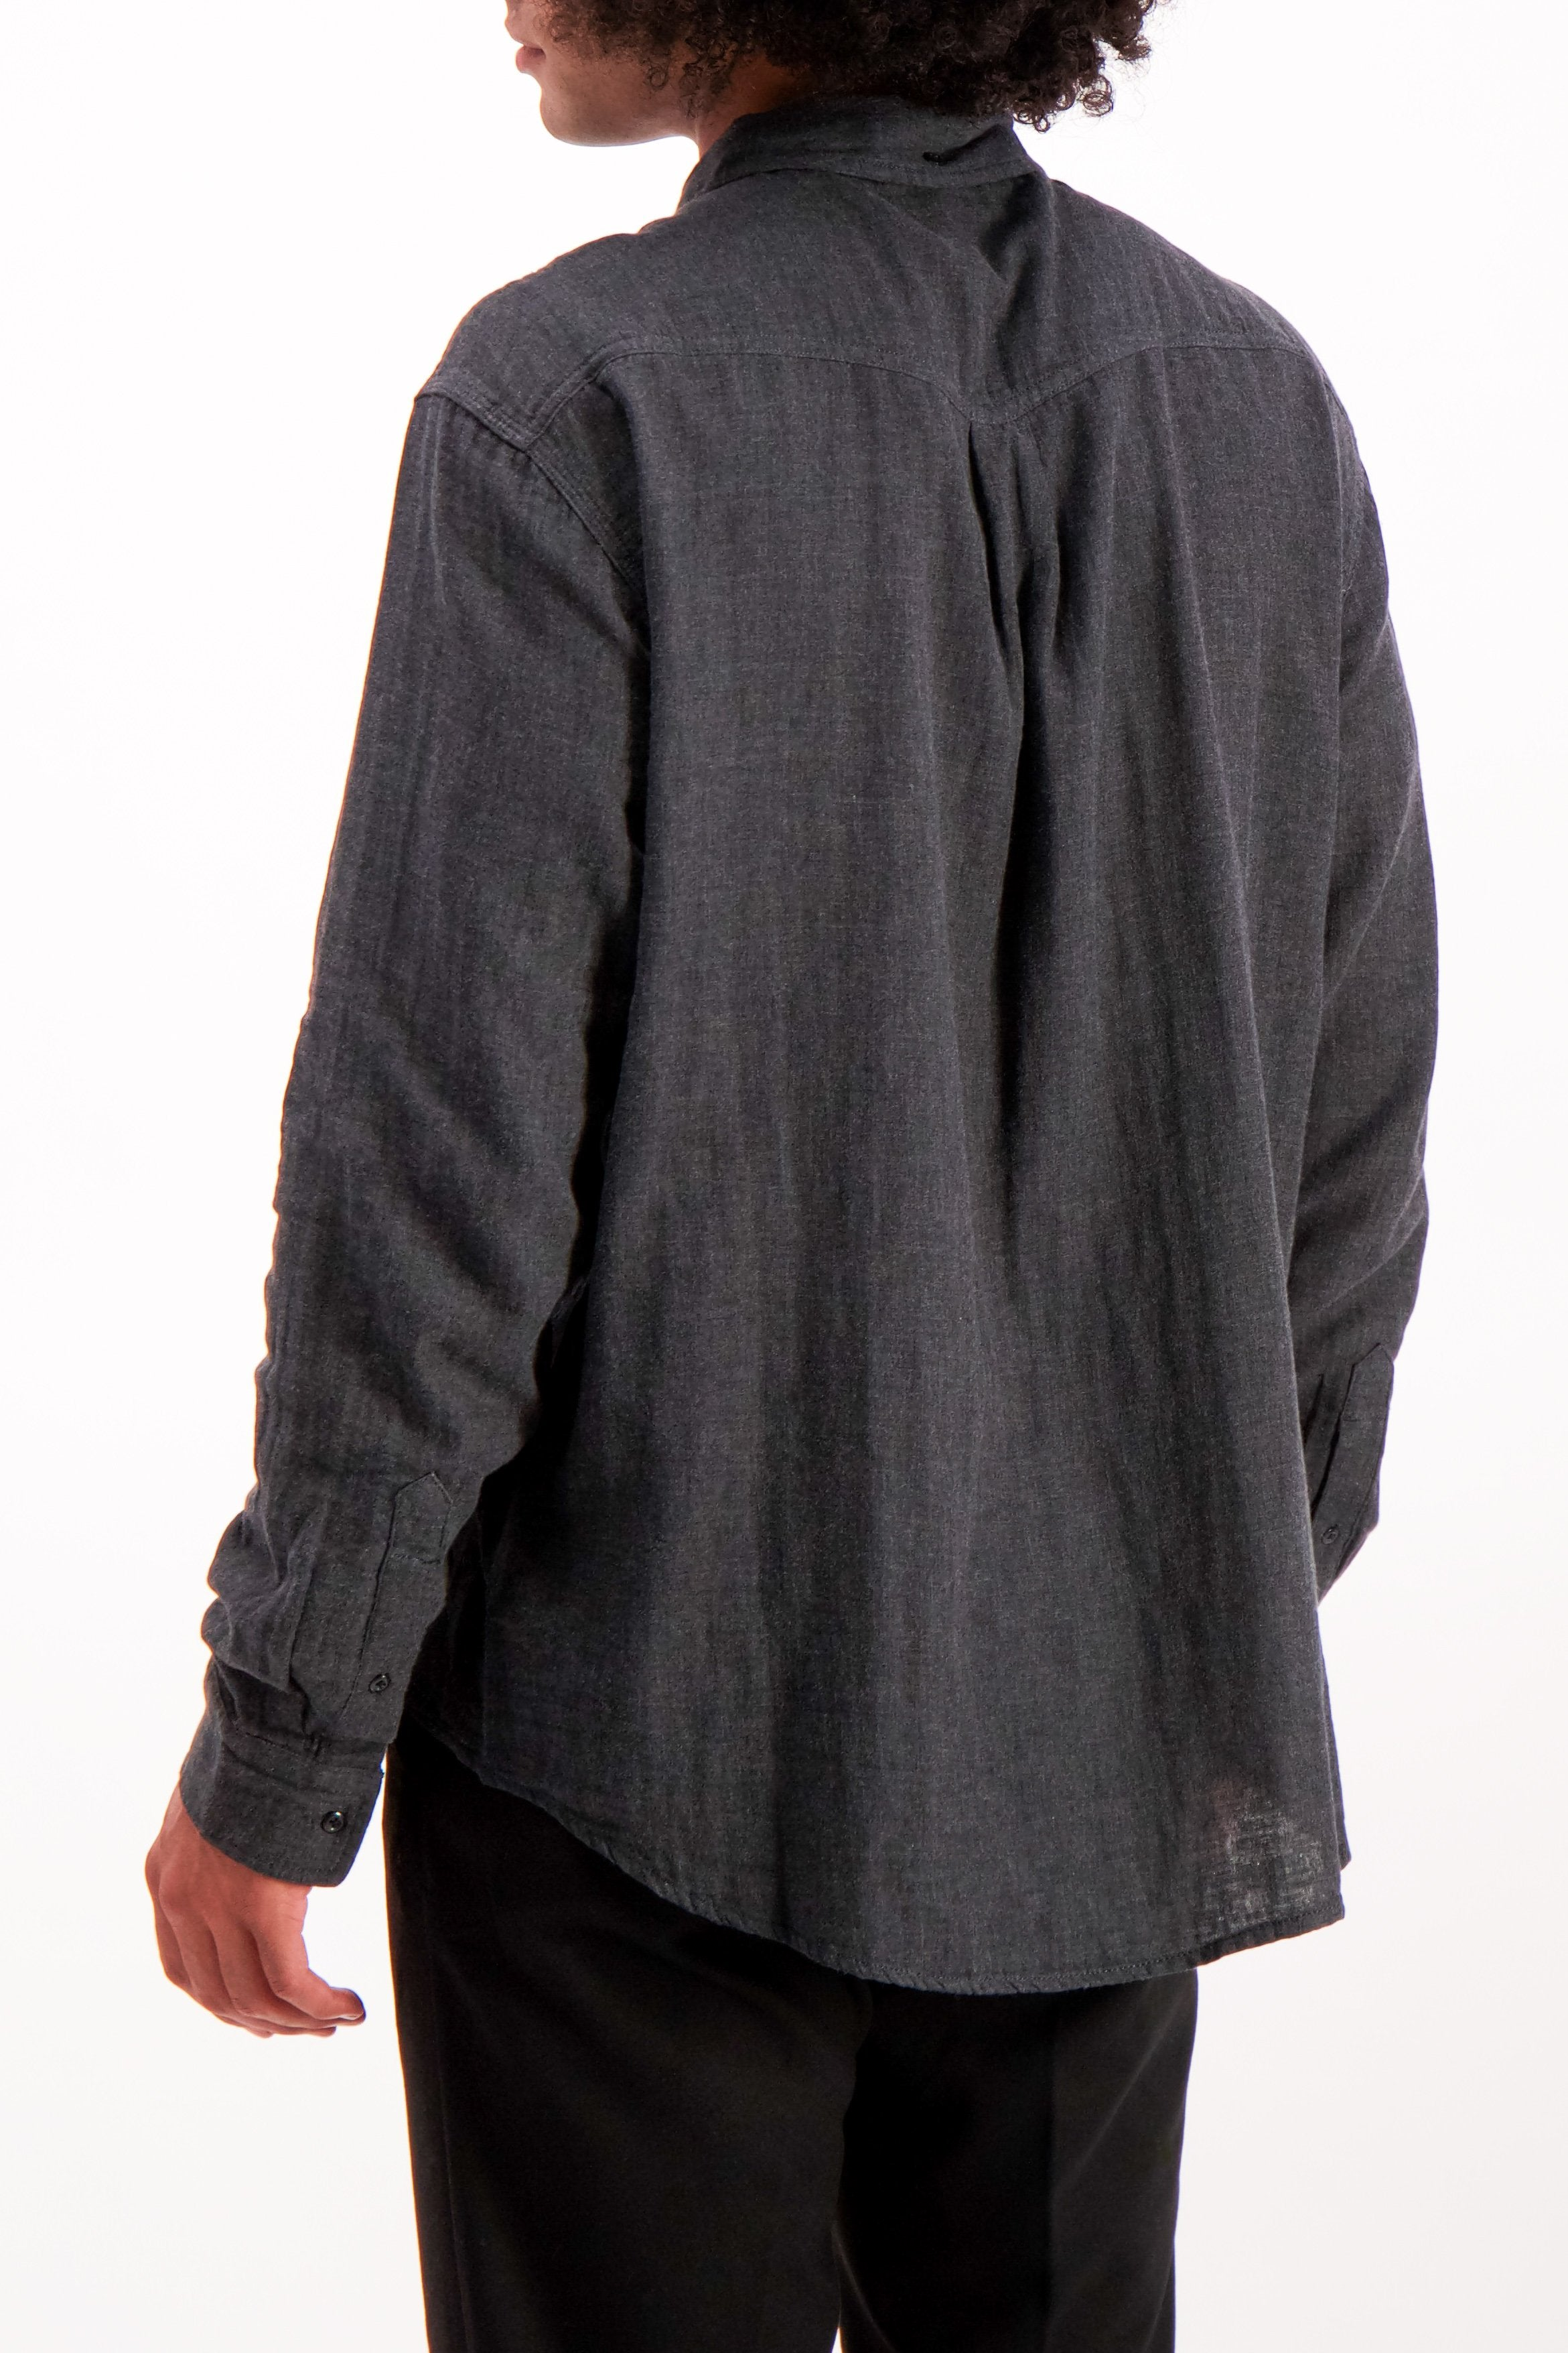 Back Crop Image Of Model Wearing Alex Mill Men's Long Sleeve Gauze Pocket Shirt Charcoal